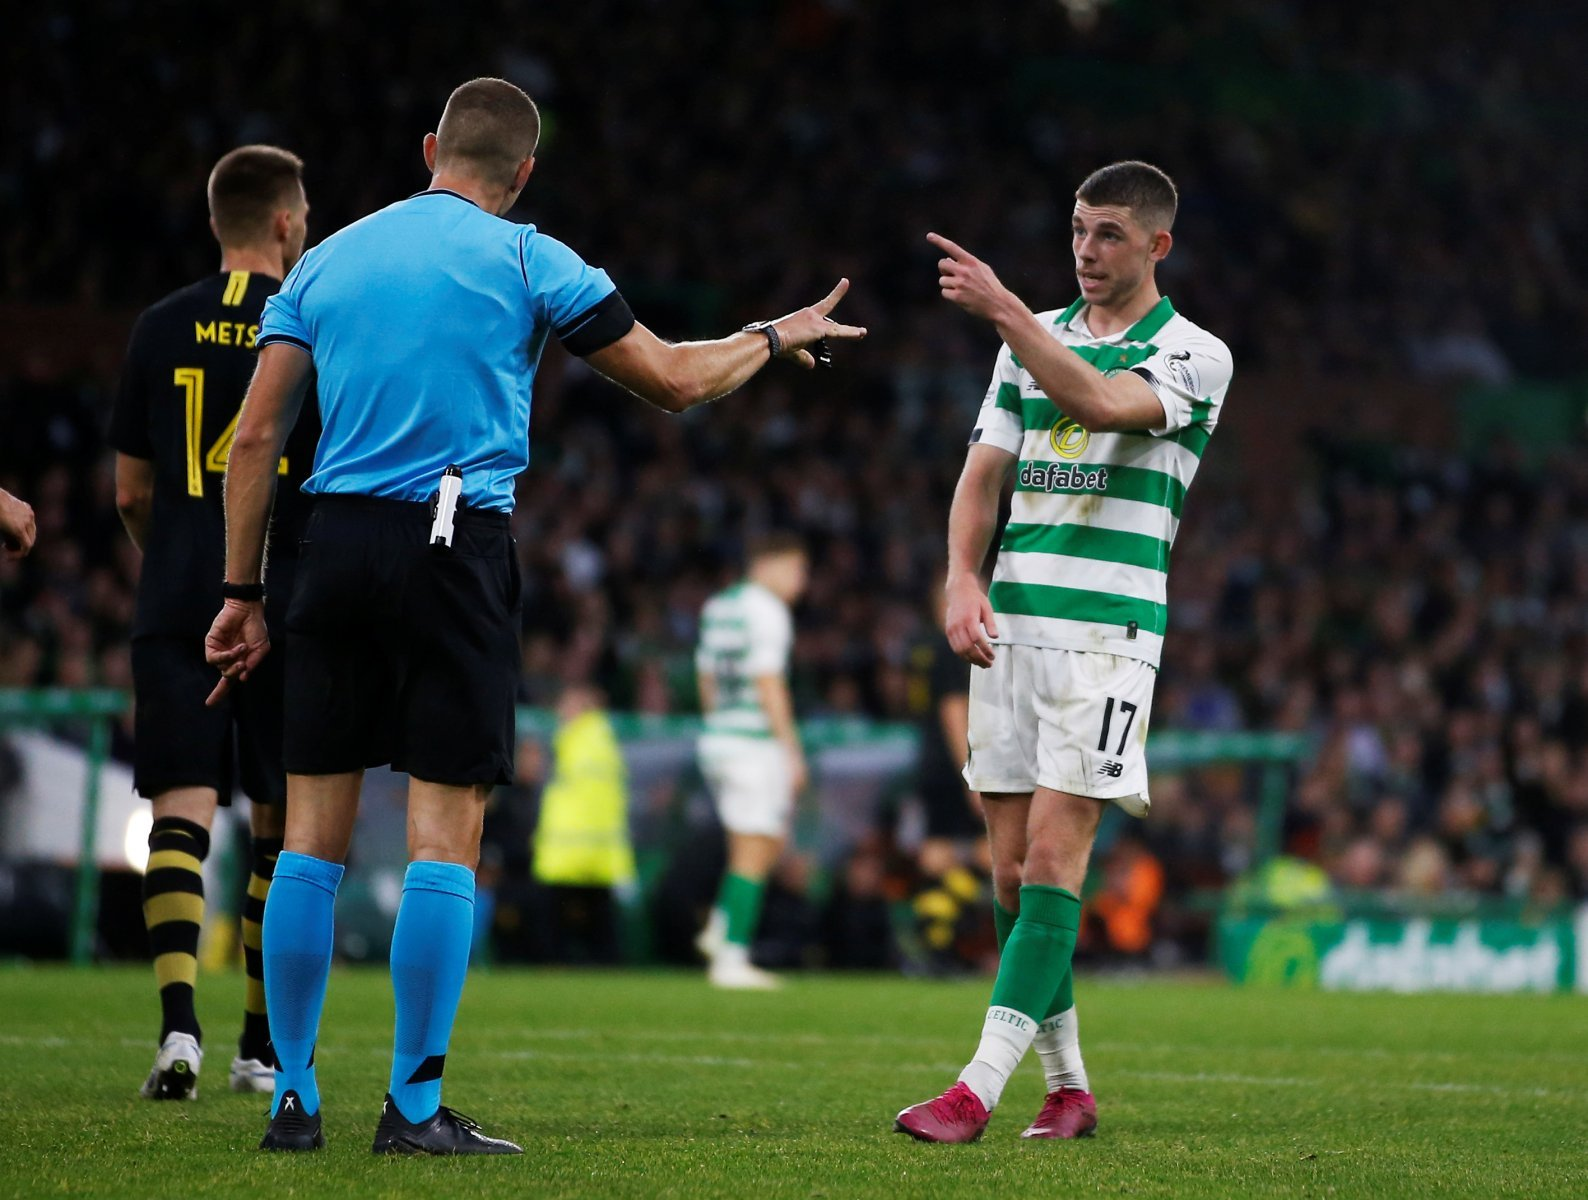 Celtic: Ryan Christie remains downbeat after weekend red card